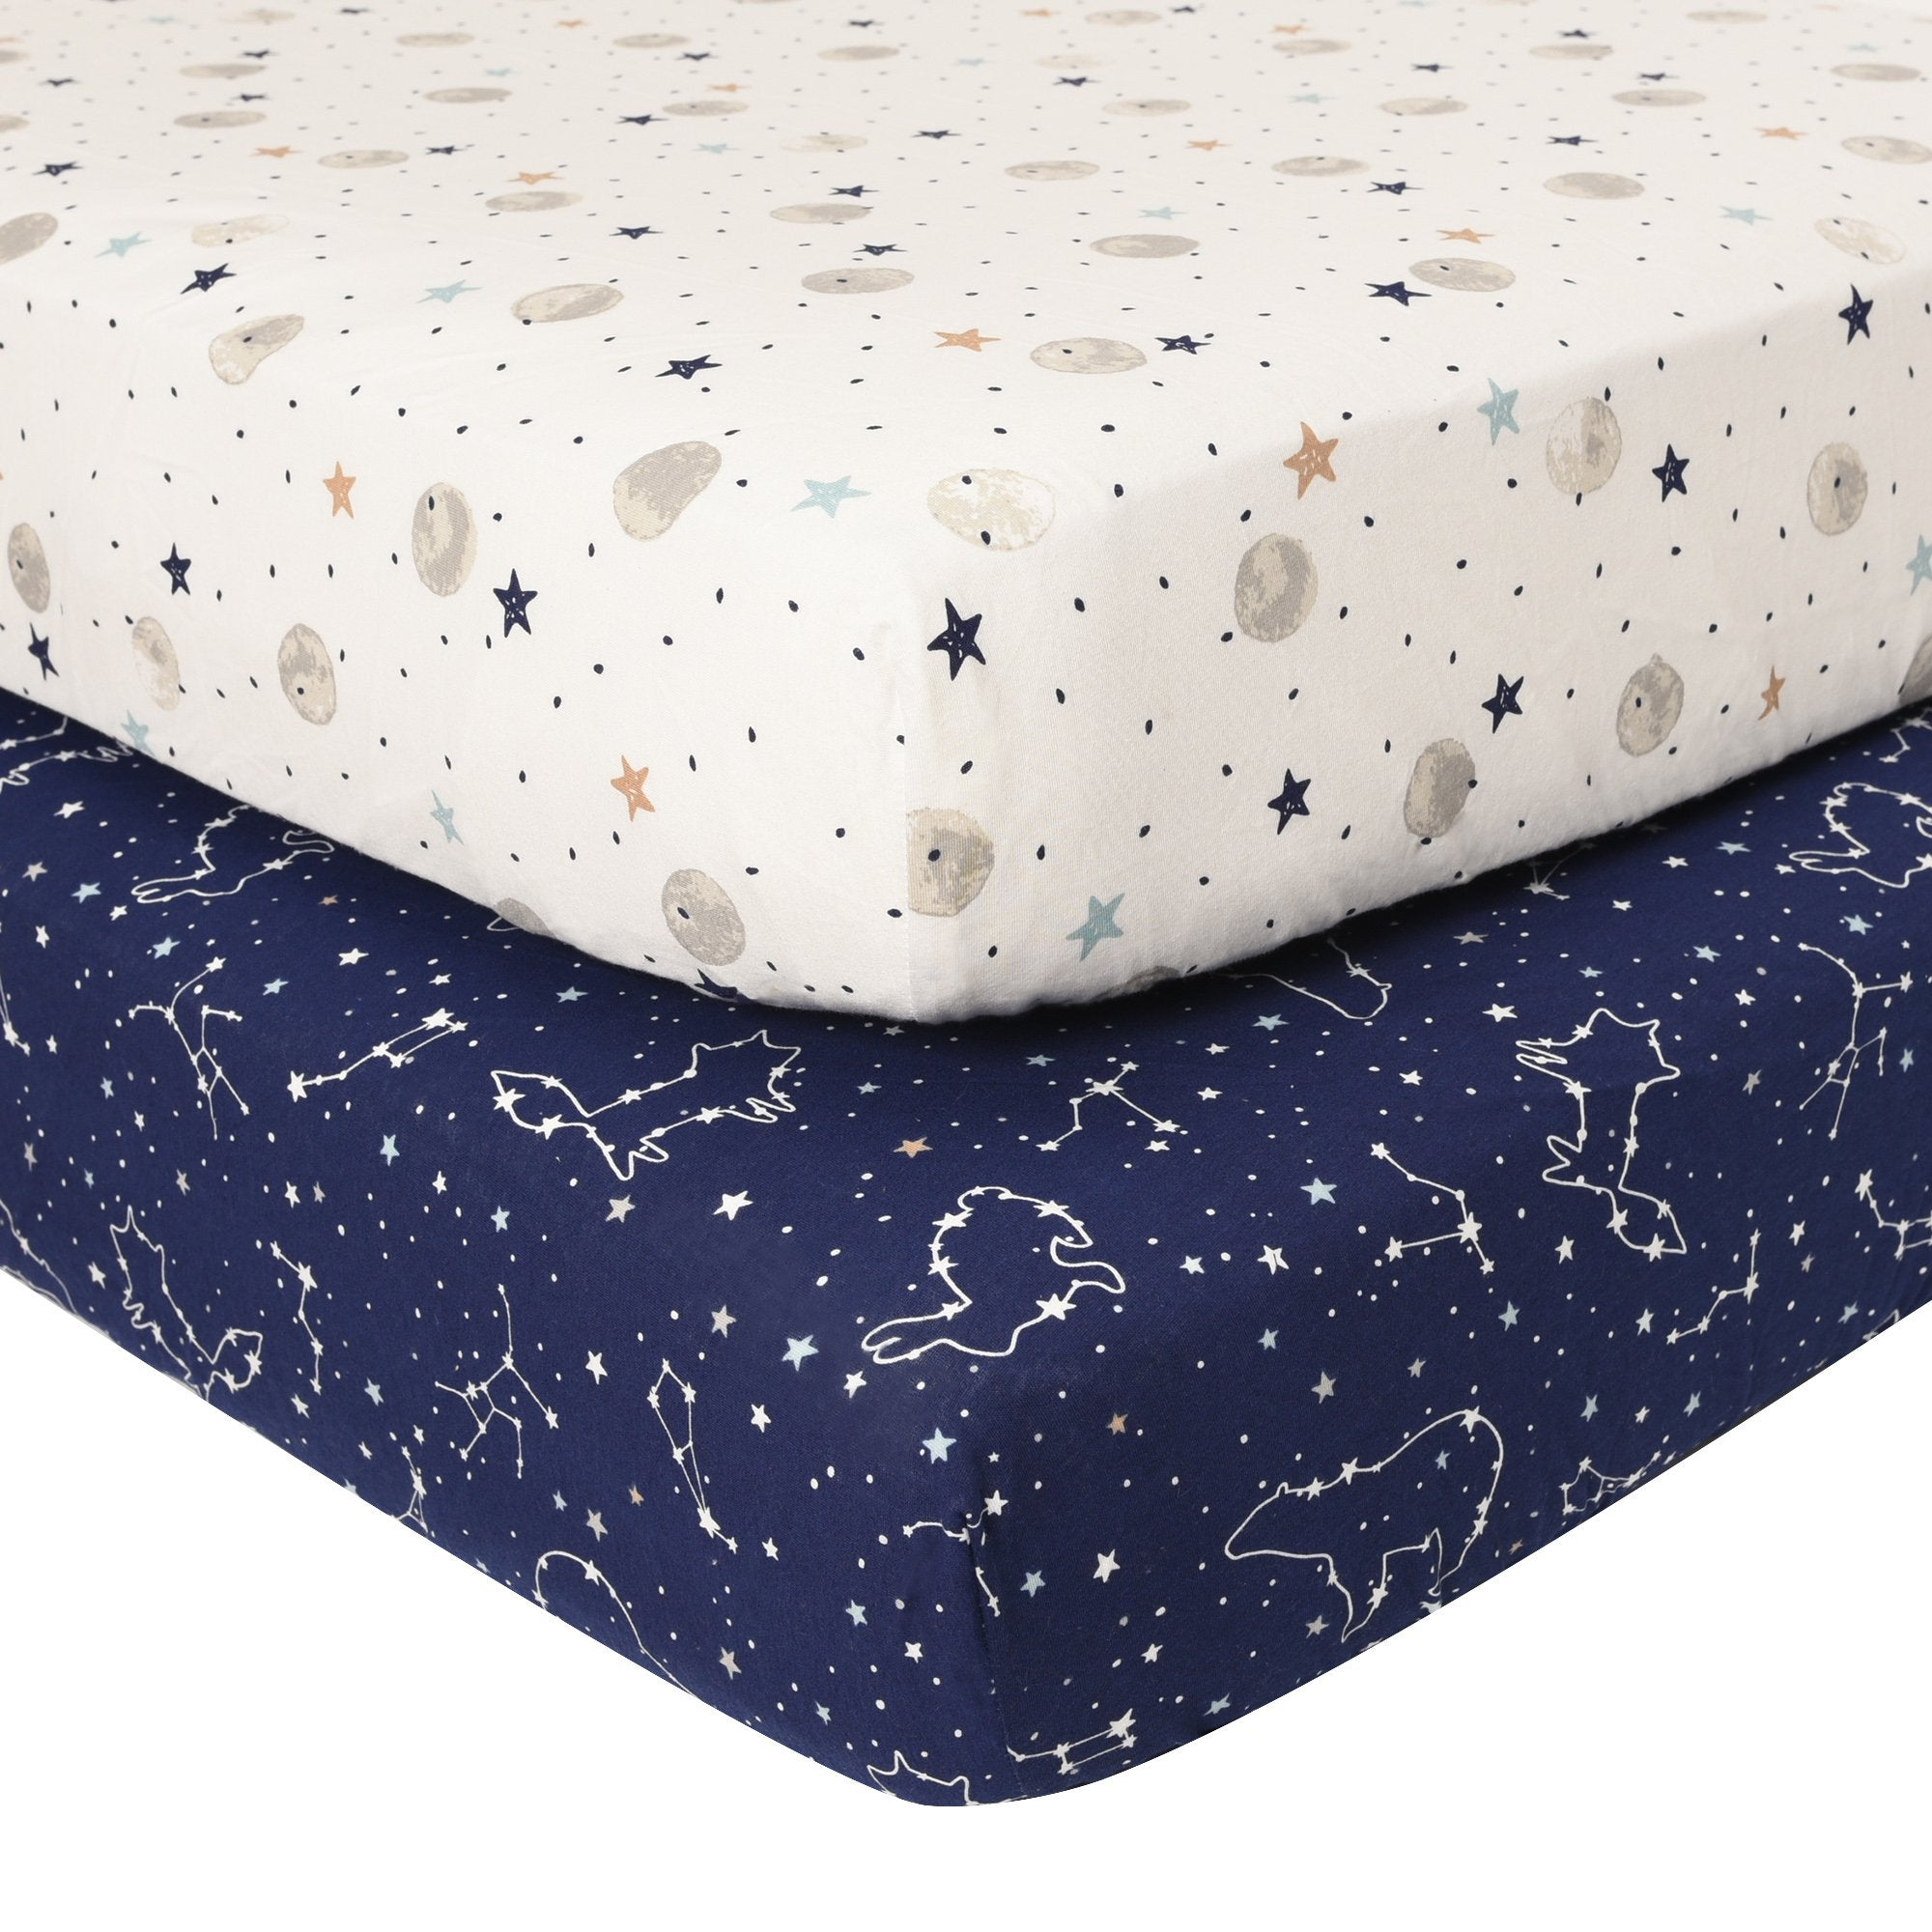 Baby's First by Nemcor, 2-Pack Jersey Mini Crib Sheets, Starry Night